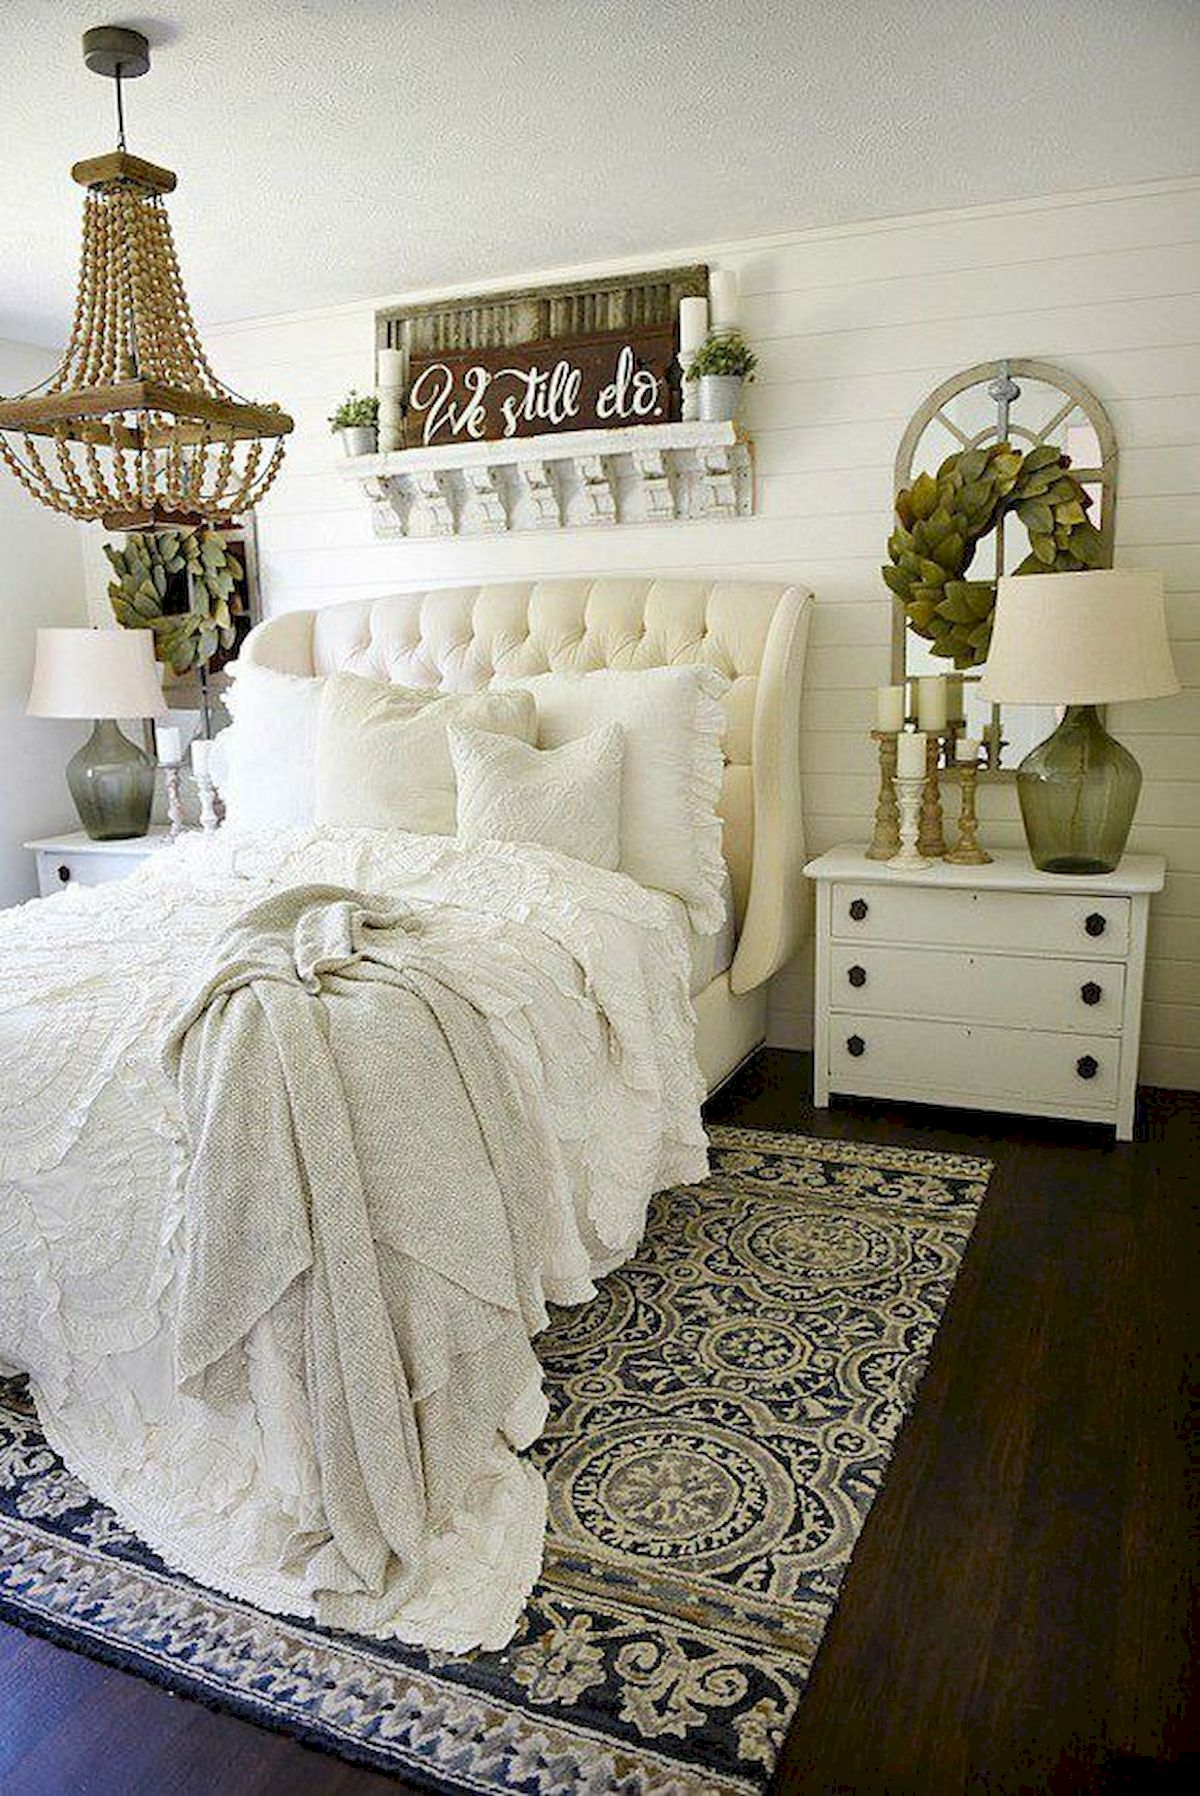 50 Awesome Wall Decor Ideas For Bedroom (2)